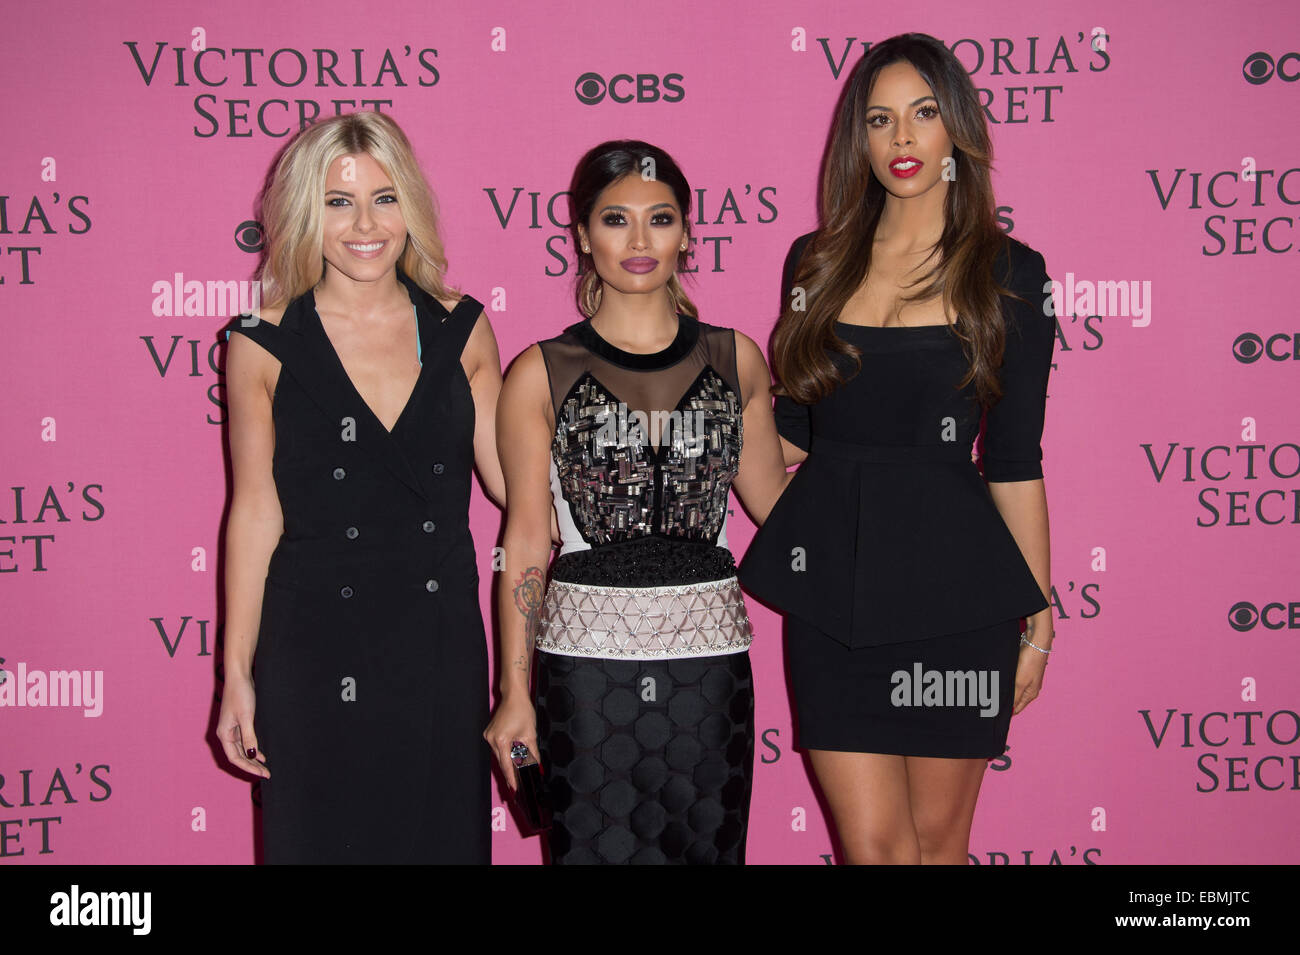 Mollie King, Vanessa White and Rochelle Humes of The Saturdays at the Victoria's Secret fashion show in London. - Stock Image